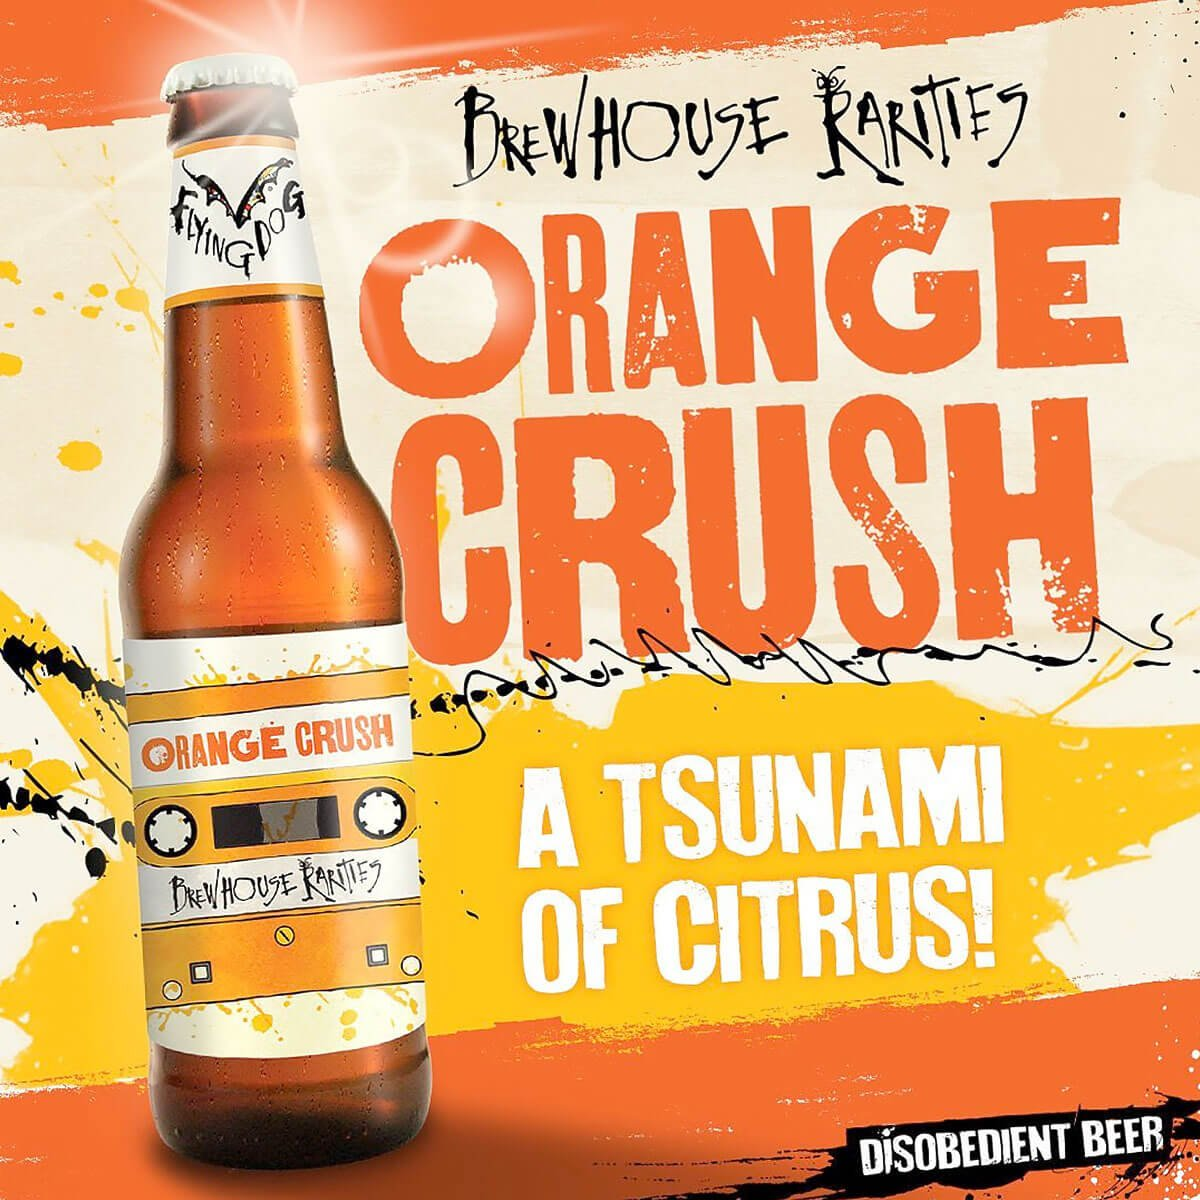 Flying Dog Brewery created the latest summer ale to add to your cooler, Orange Crush, a boozy beer mimics the dominant flavors and aroma of the cocktail.